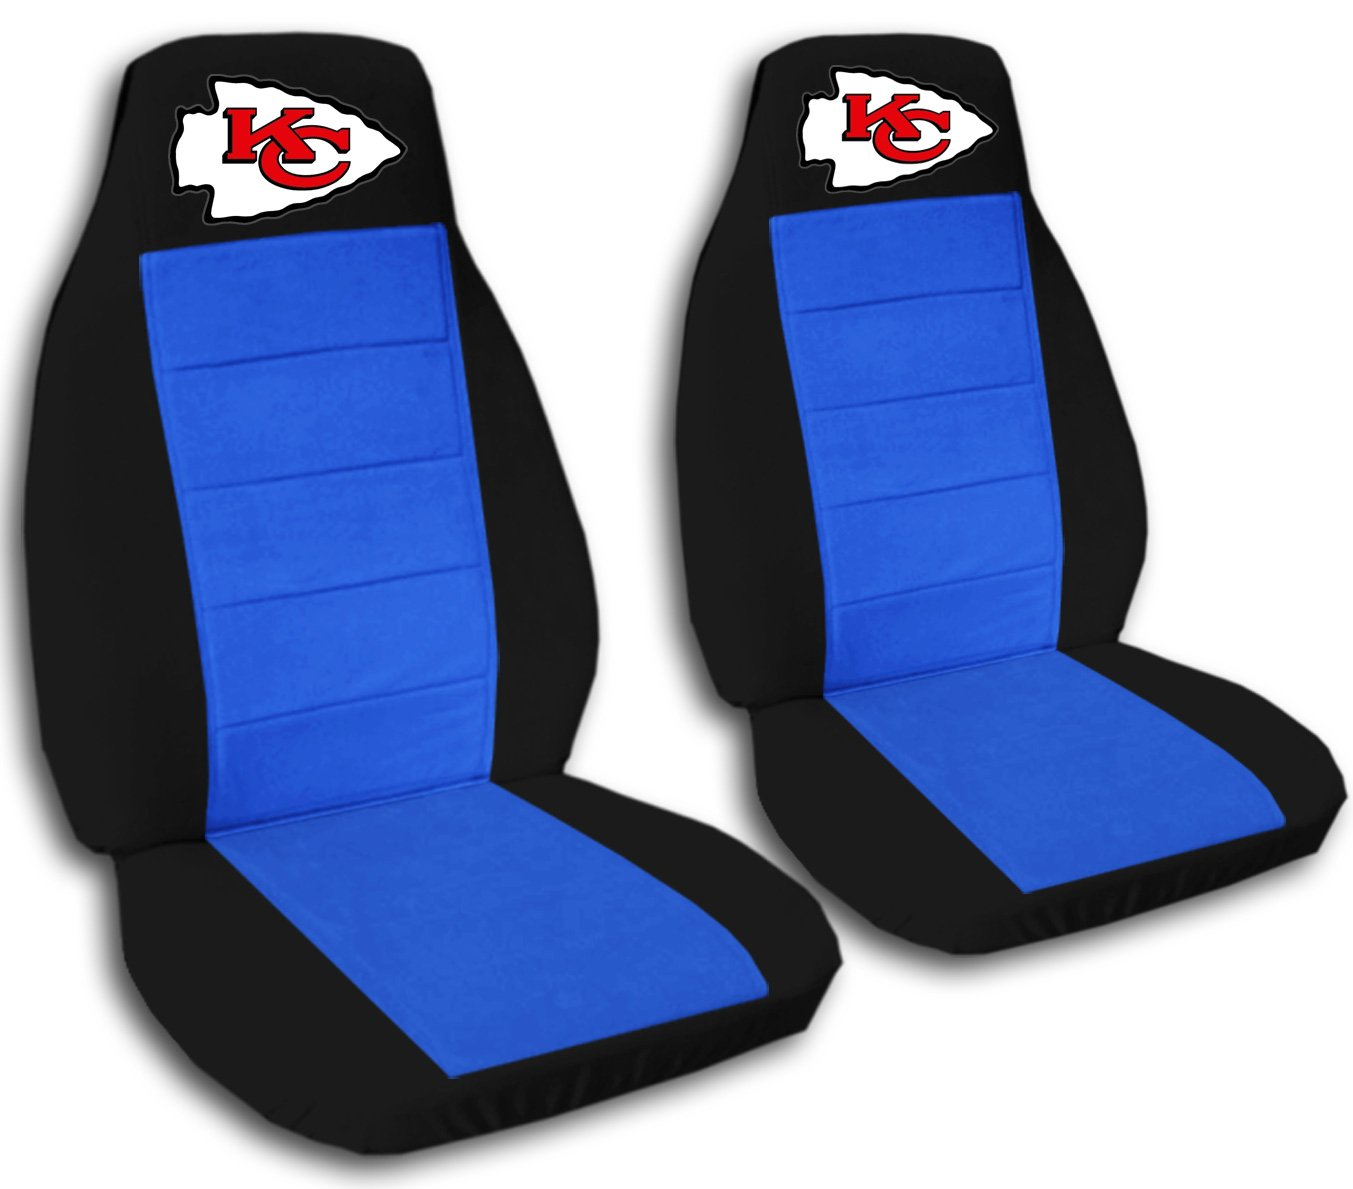 2 Black and Medium Blue Kansas City seat covers for a 2011 to 2012 Jeep Grand Cherokee. Side airbag friendly